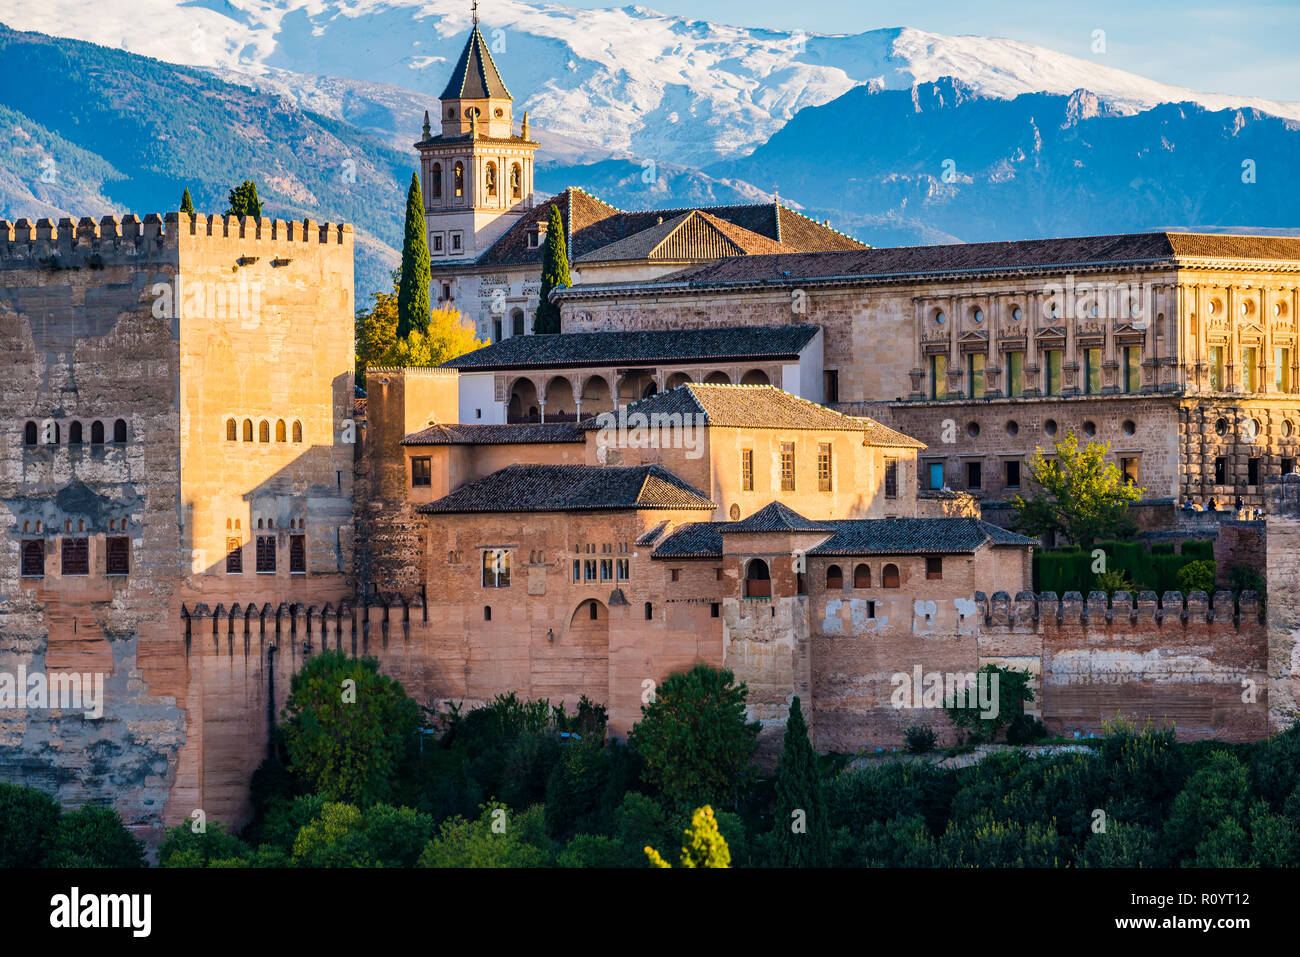 Alhambra. Nazaries Palaces and Palace of Charles V from Mirador de San Nicolas. Granada, Andalucia, Spain, Europe. - Stock Image